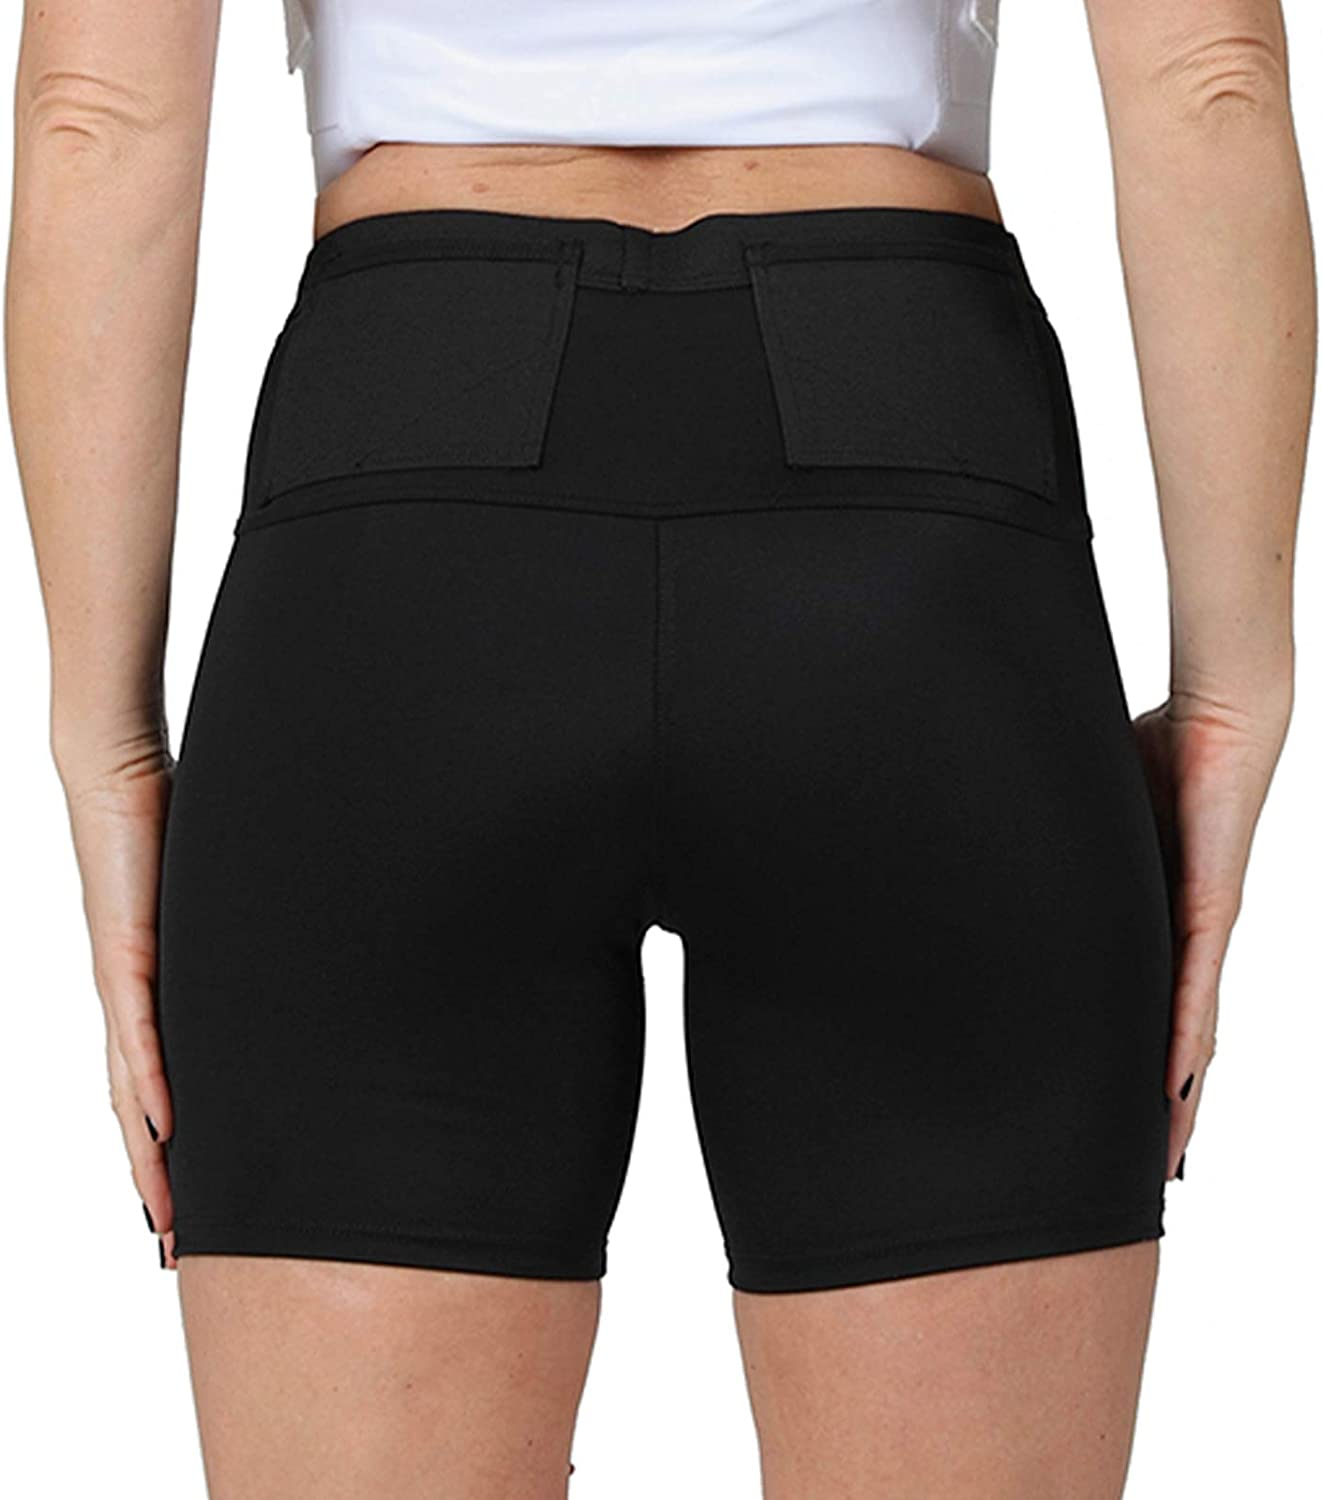 ISPRO TACTICAL Insta Slim Womens Concealment Compression Undershorts w/Holster for Daily Training Home Defense WGS018